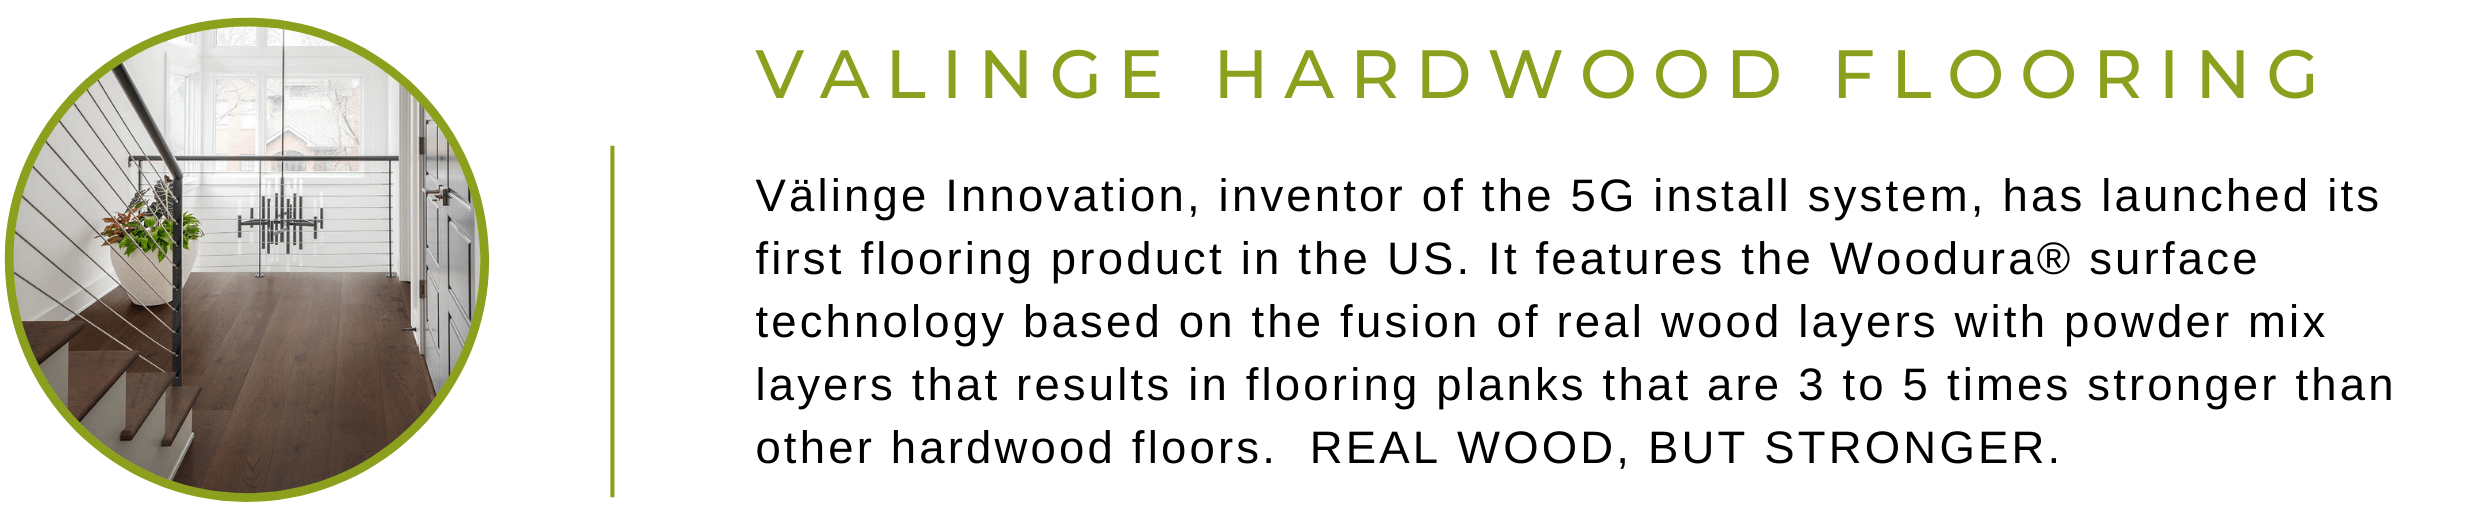 Valinge Hardwood Flooring. Valinge Innovation, inventor of the 5G install system, has launched its first flooring product in the United States. It features the Woodura surface technology based on the fusion of real wood layers with powder mix layers that results in flooring planks that are 3 to 5 times stronger than other hardwood floors. Real Wood, But Stronger.